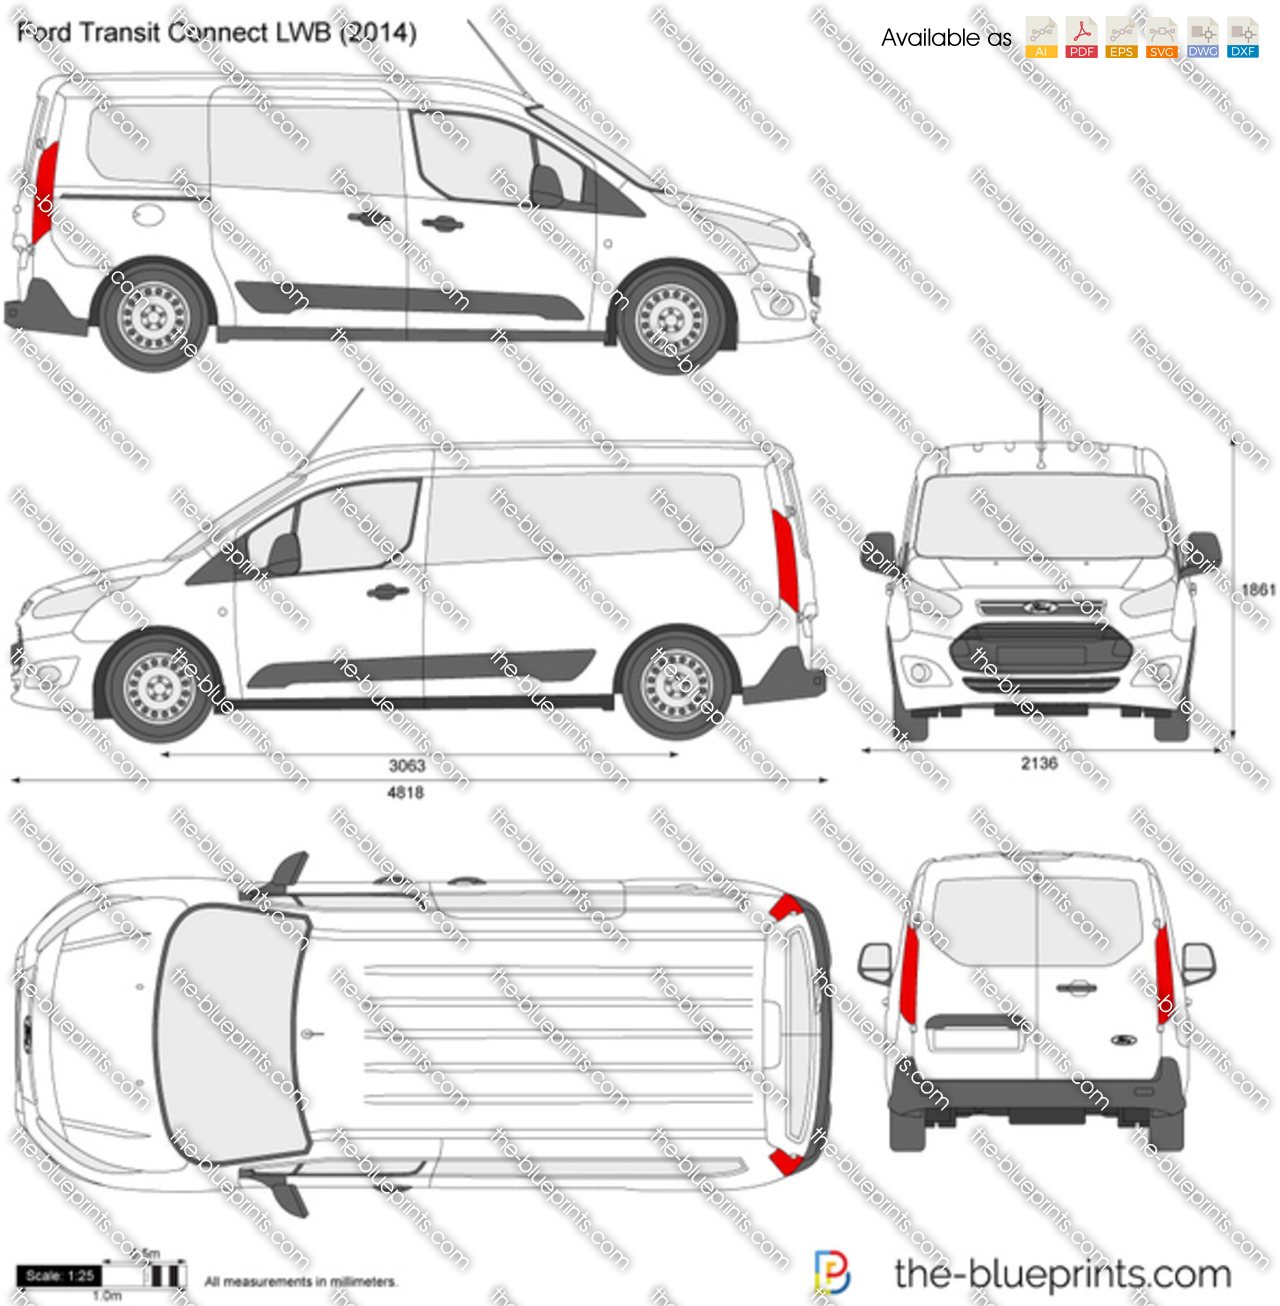 Ford transit connect lwb vector drawing for Custom blueprints